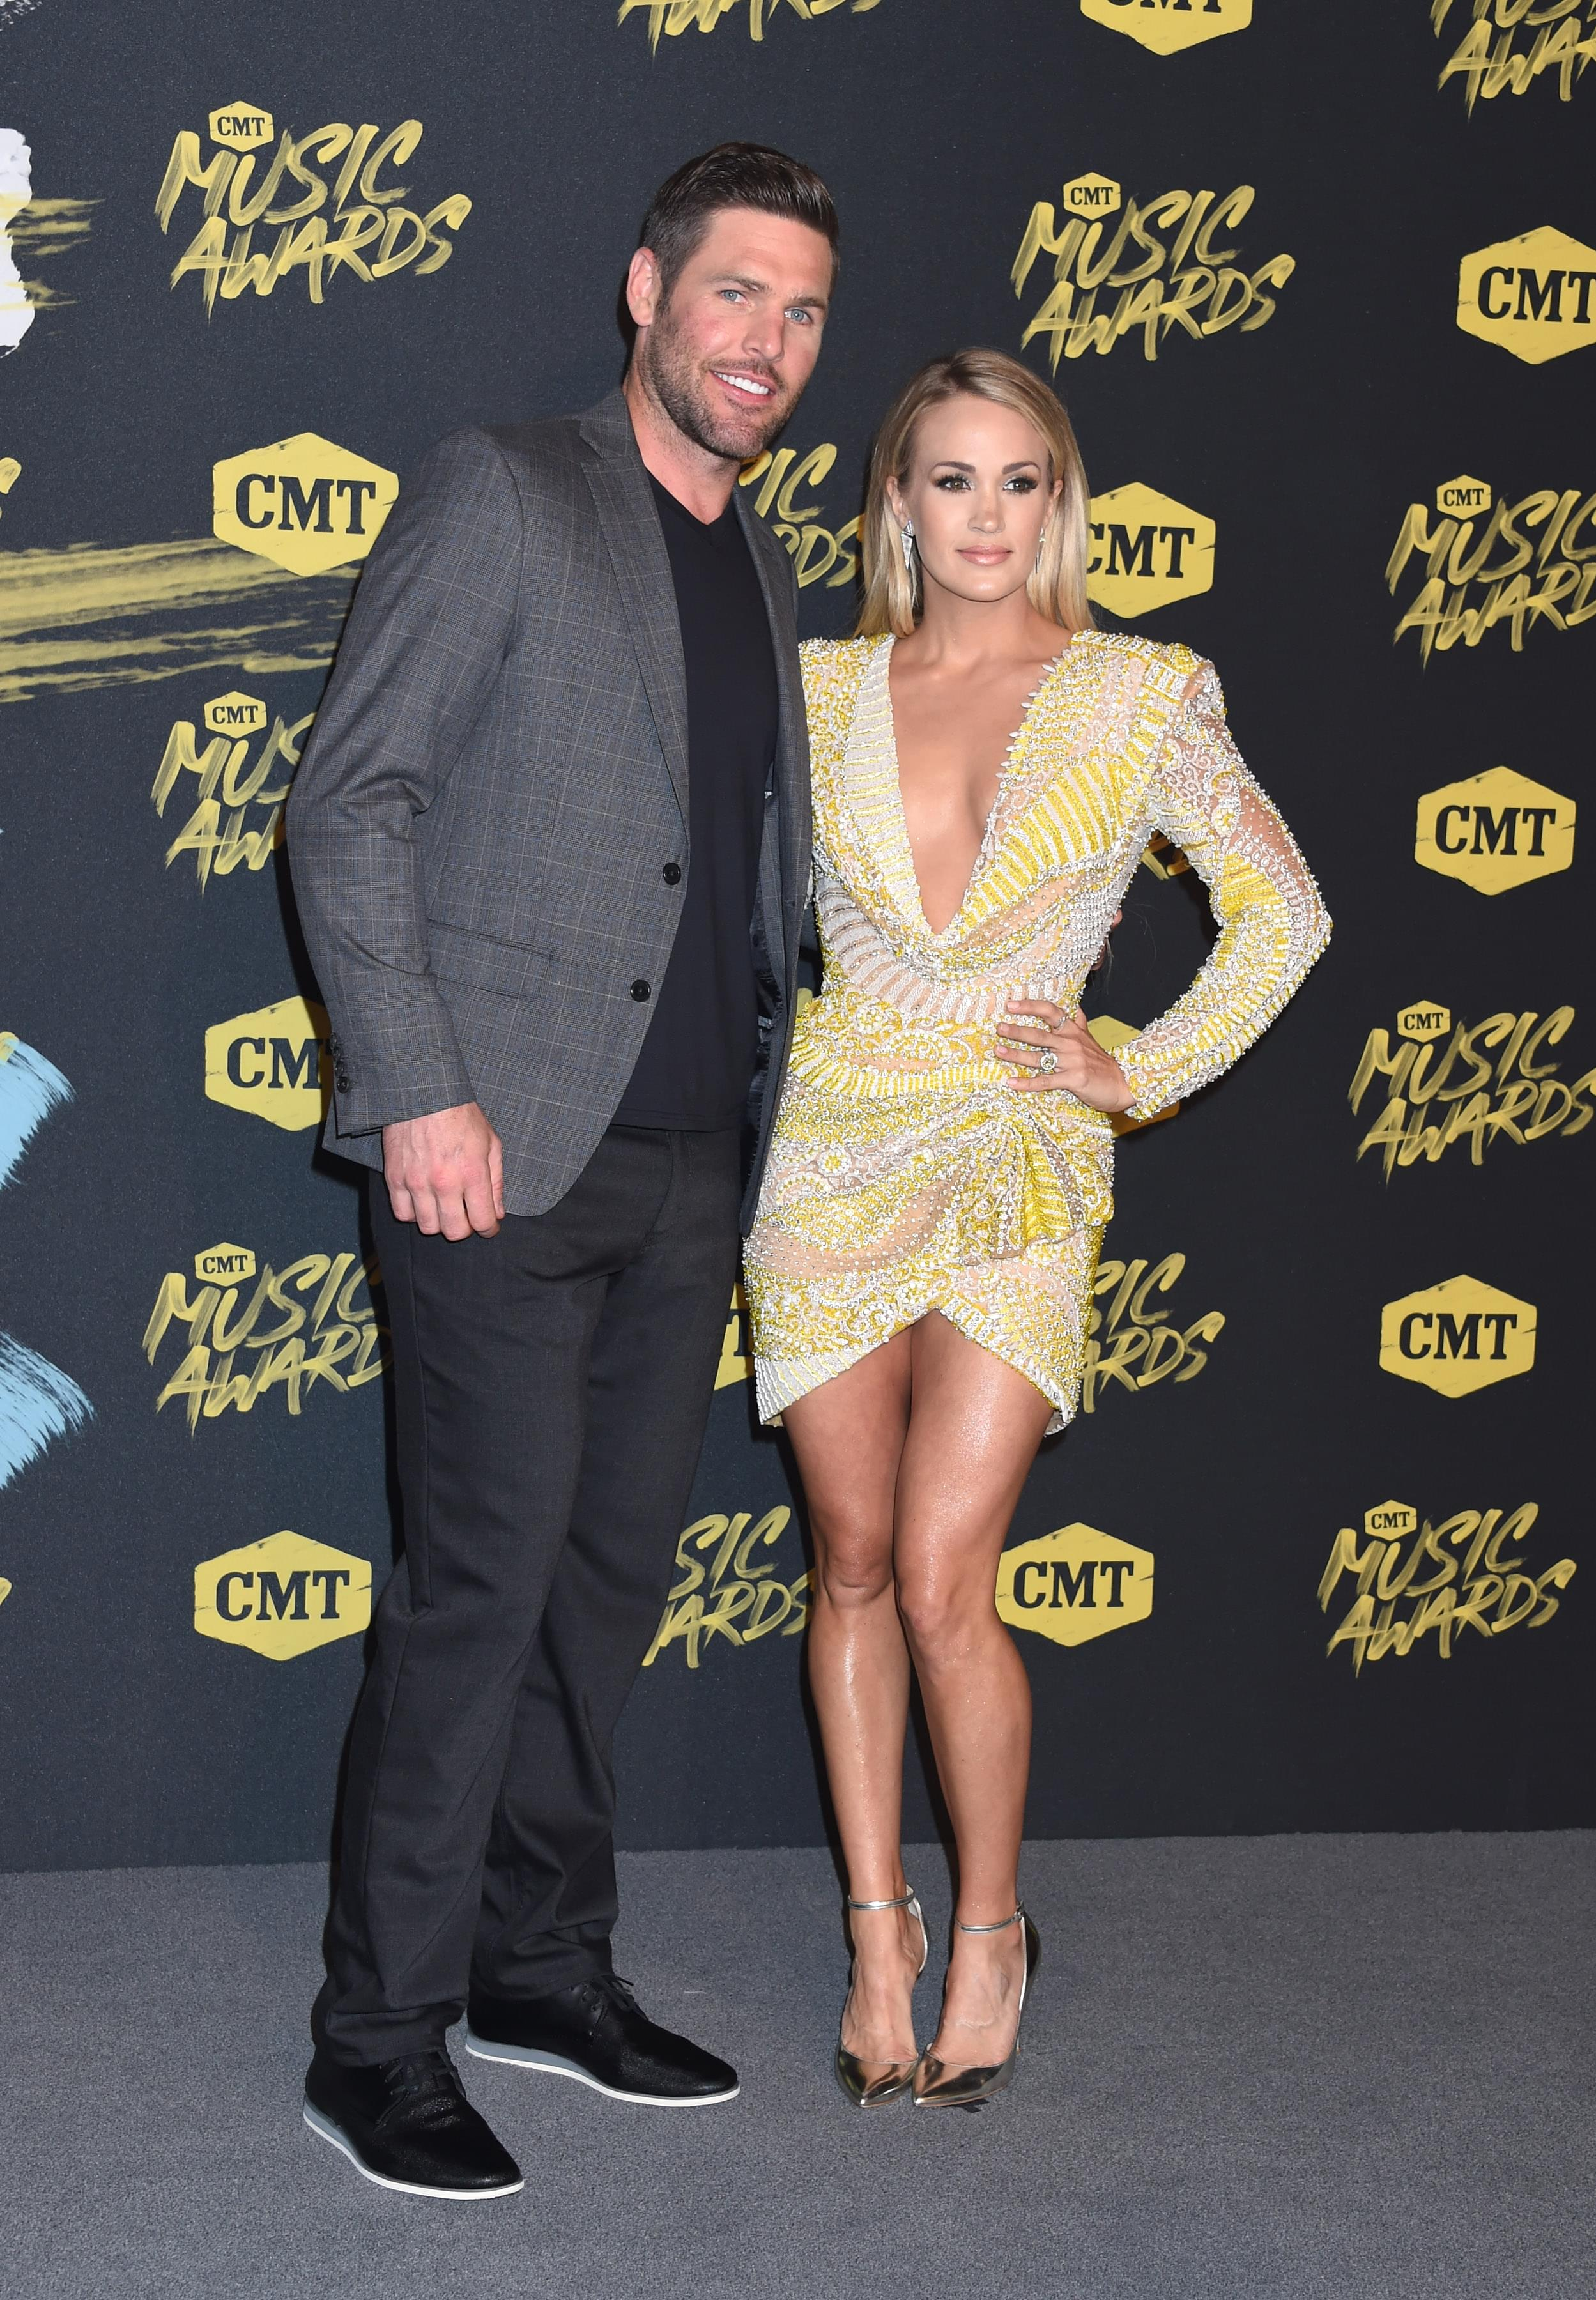 67 Of Our Favorite Red Carpet Photos From The 2018 Cmt